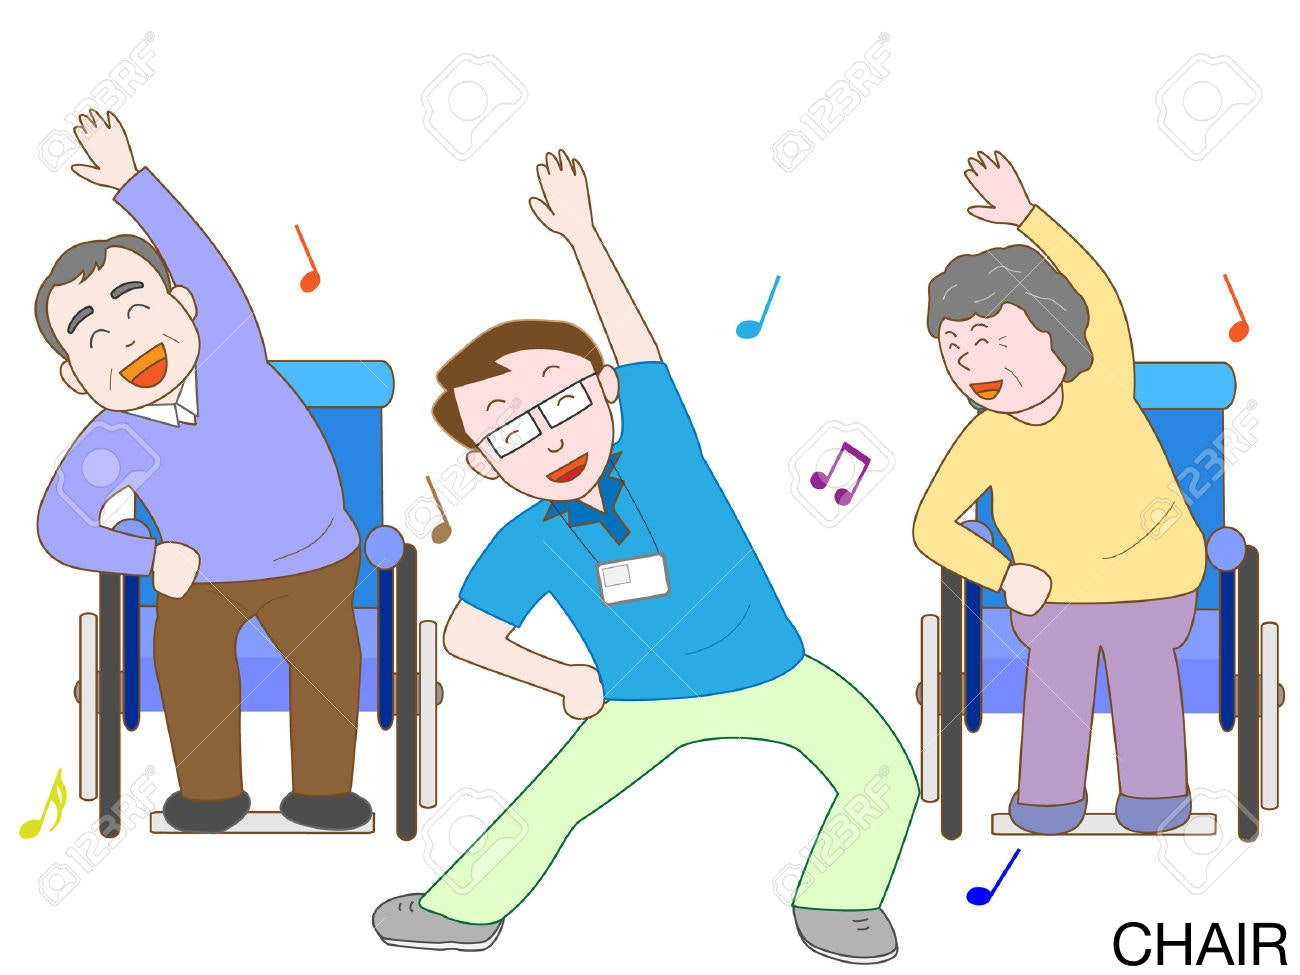 Exercises for seniors . Clipart exercise chair exercise